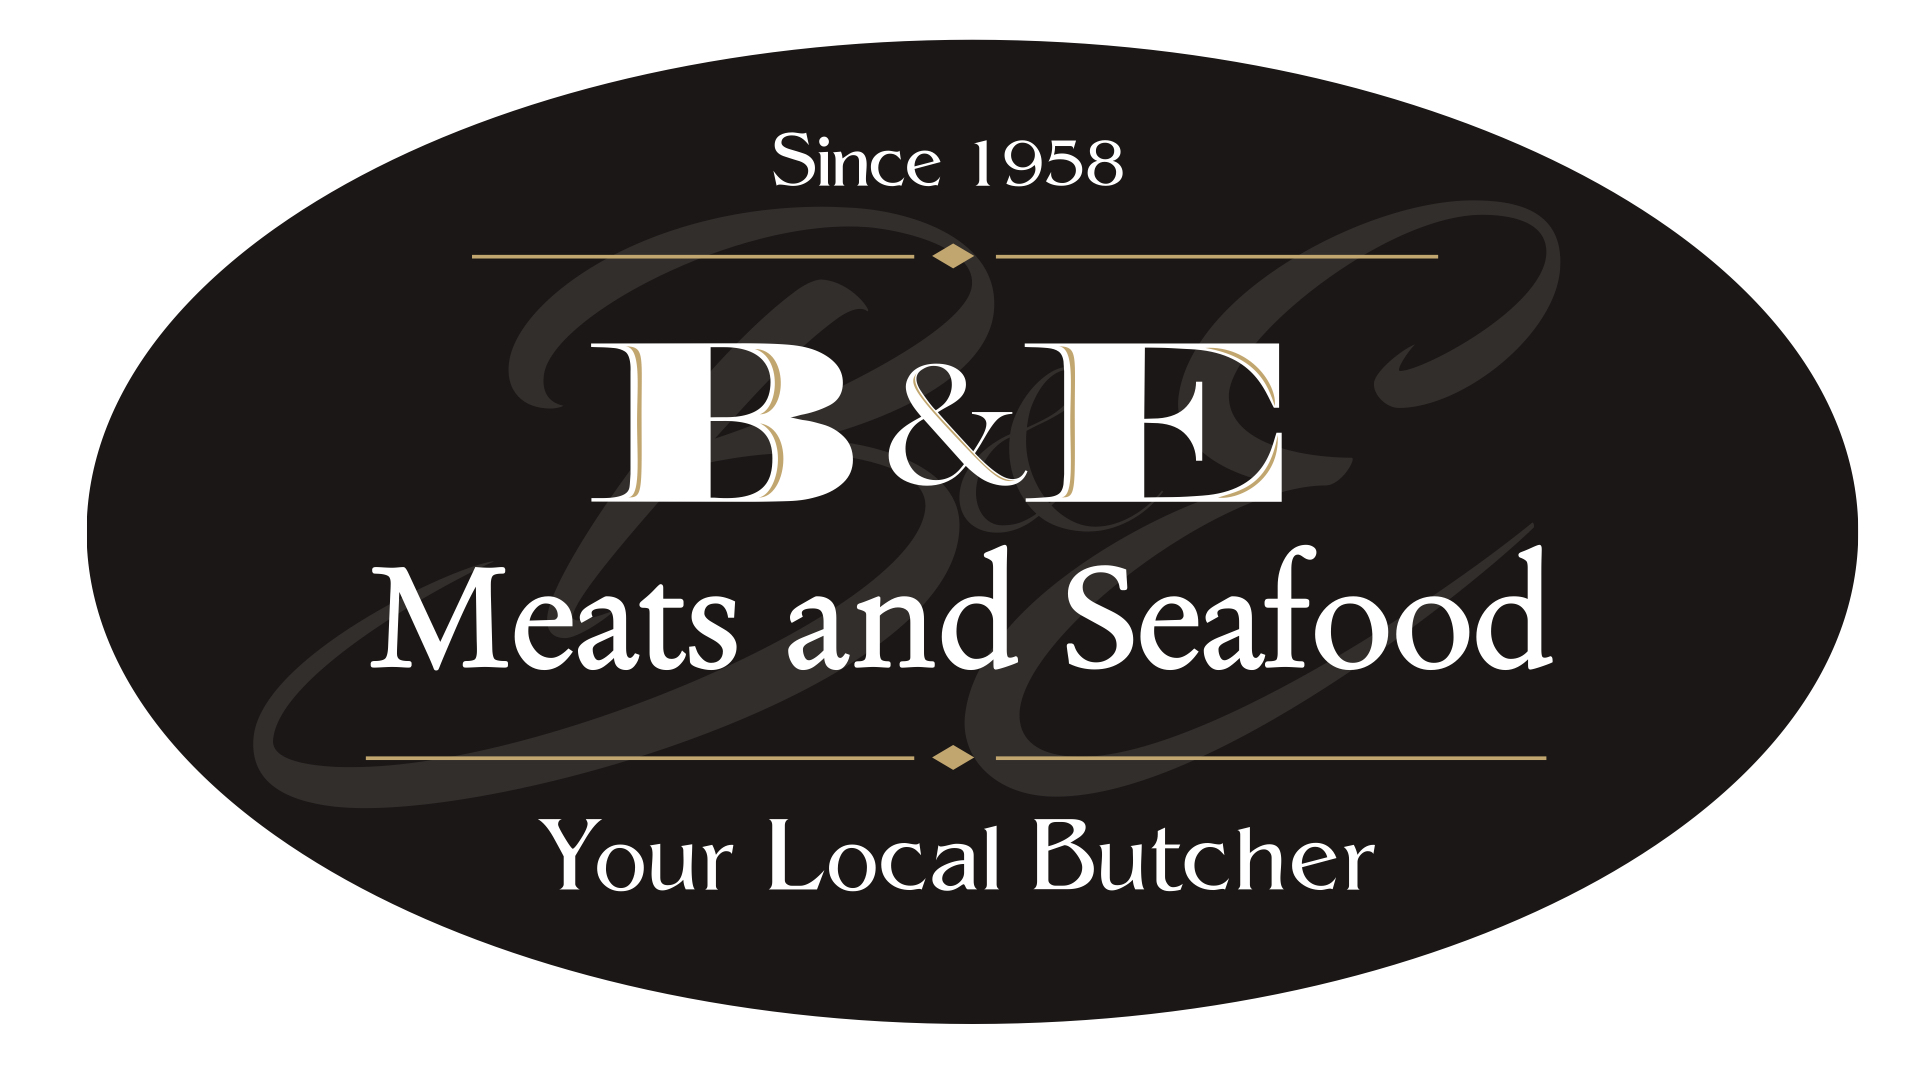 B & E Meats and Seafood